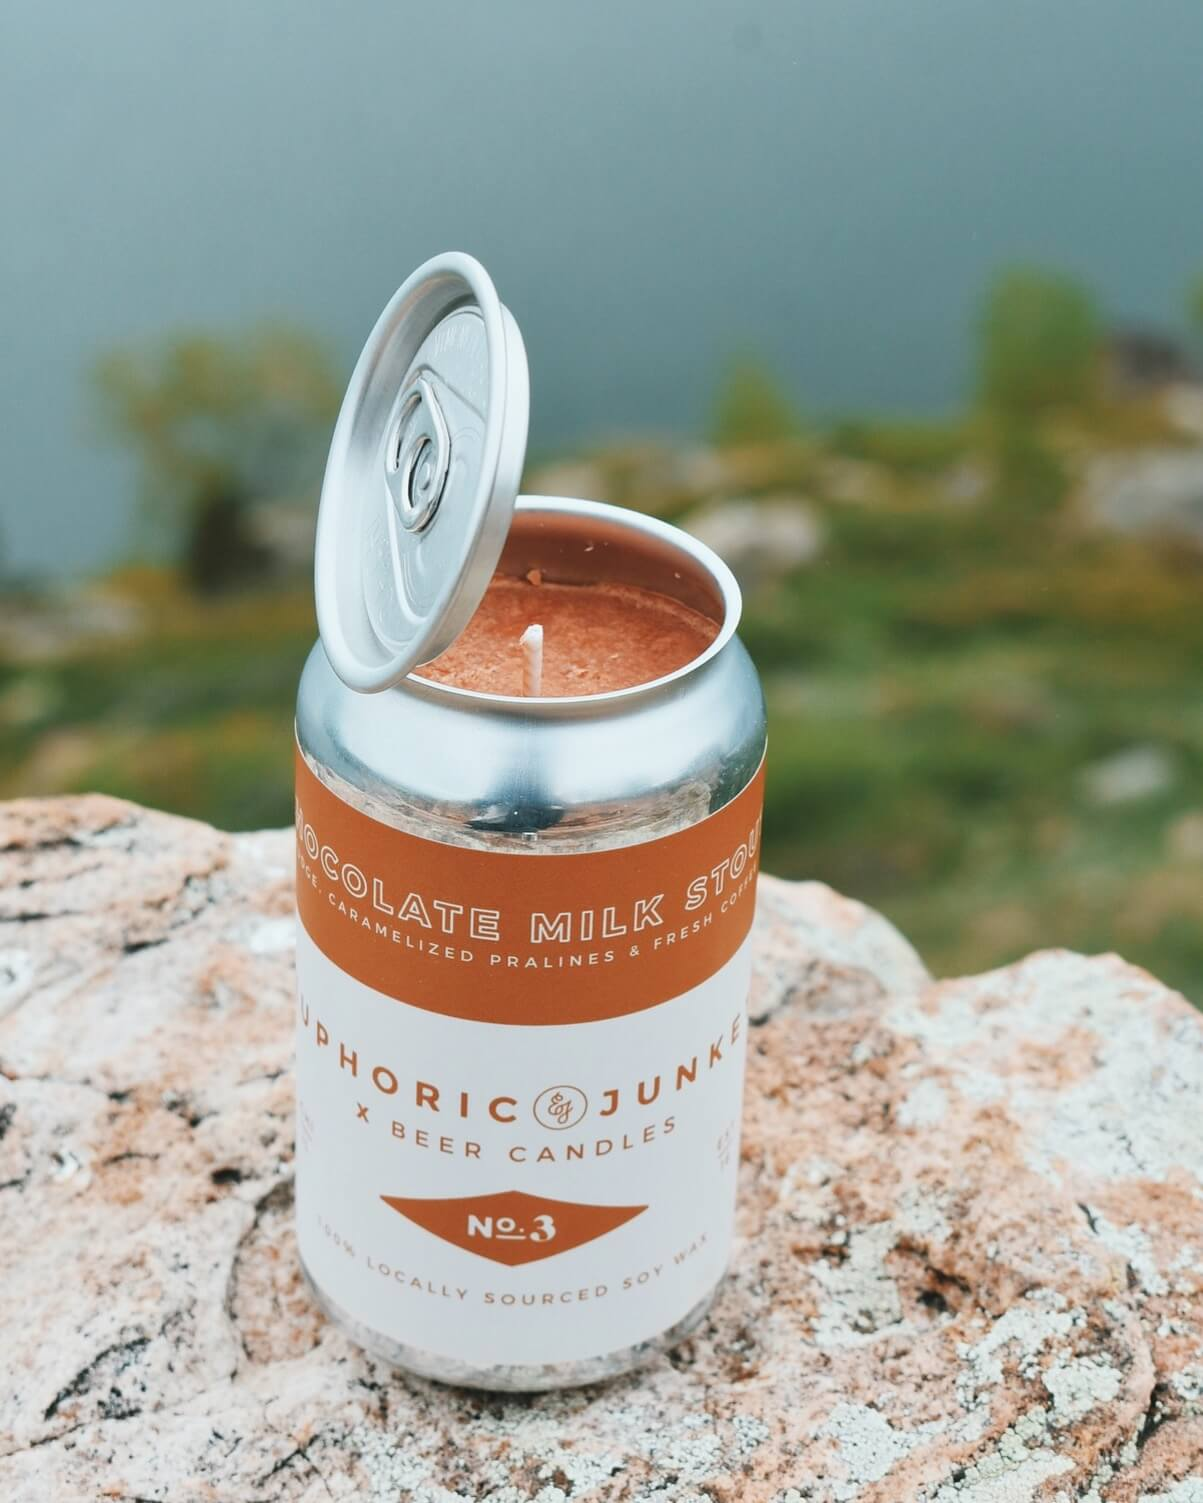 Chocolate Milk Stout Beer CAN·dle